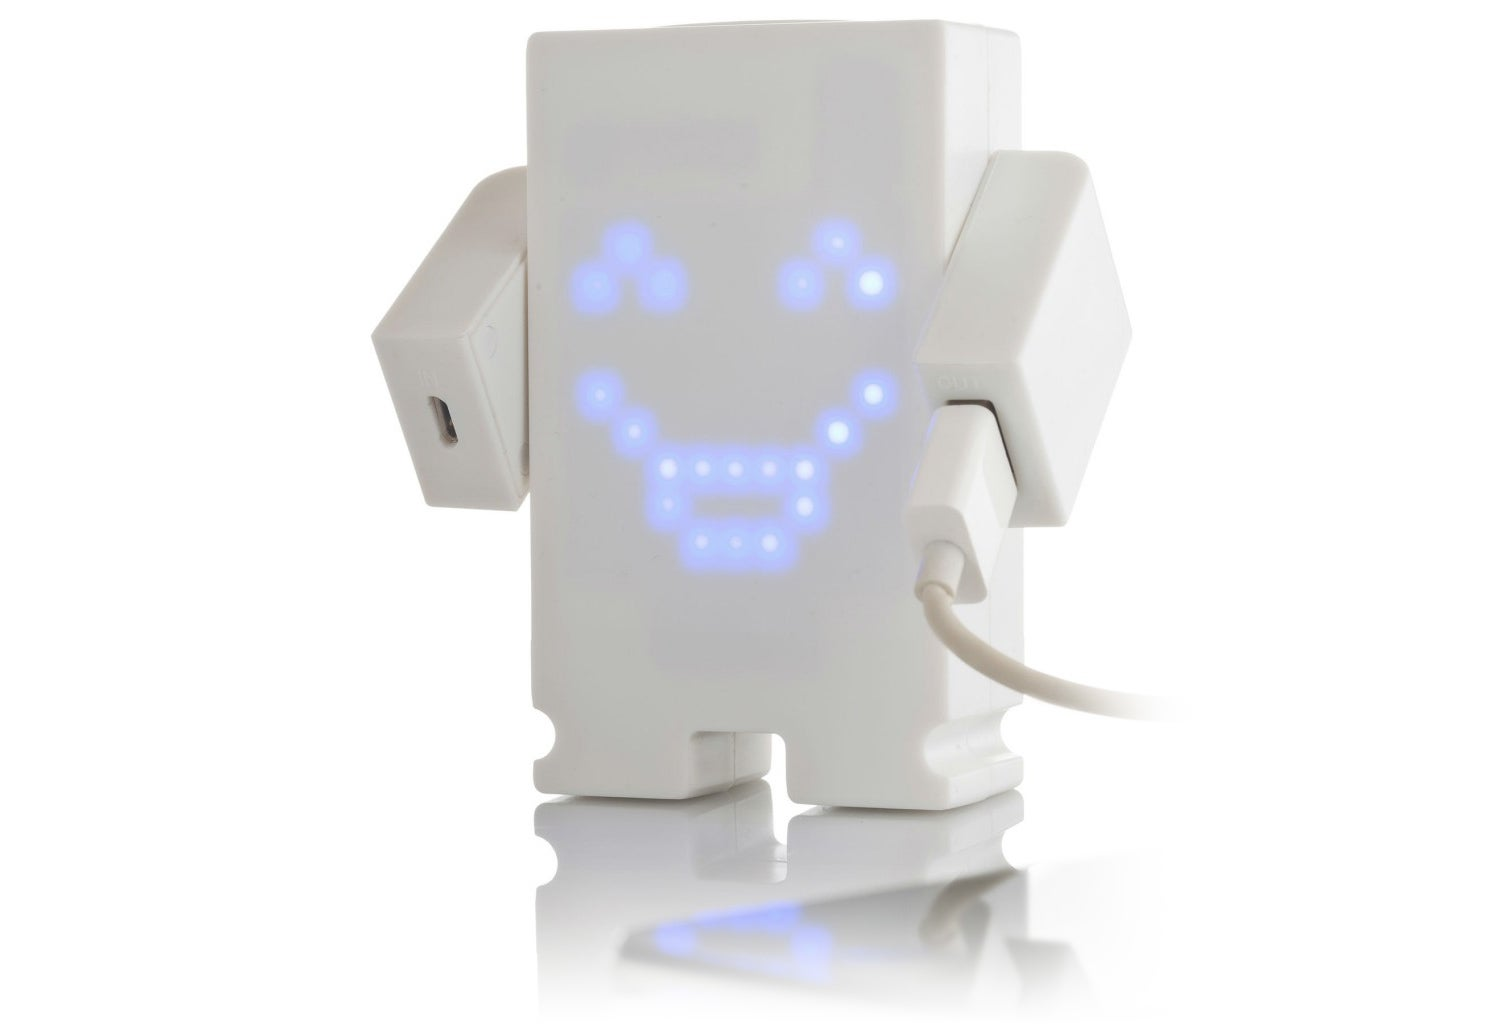 A Smiling Backup Battery That Gets Sad When It Loses Its Charge